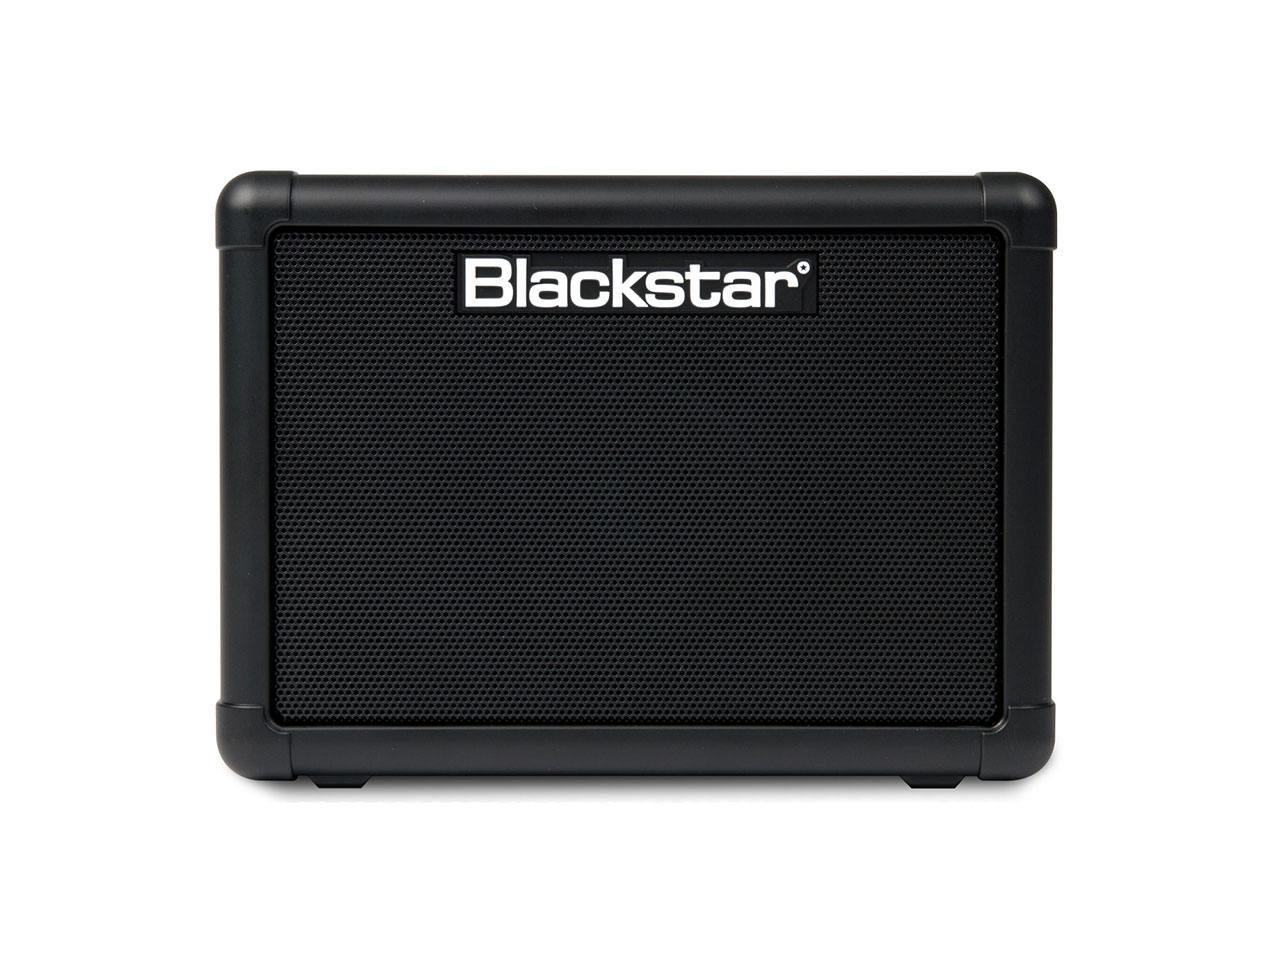 Blackstar / FLY 103 Extention Cab